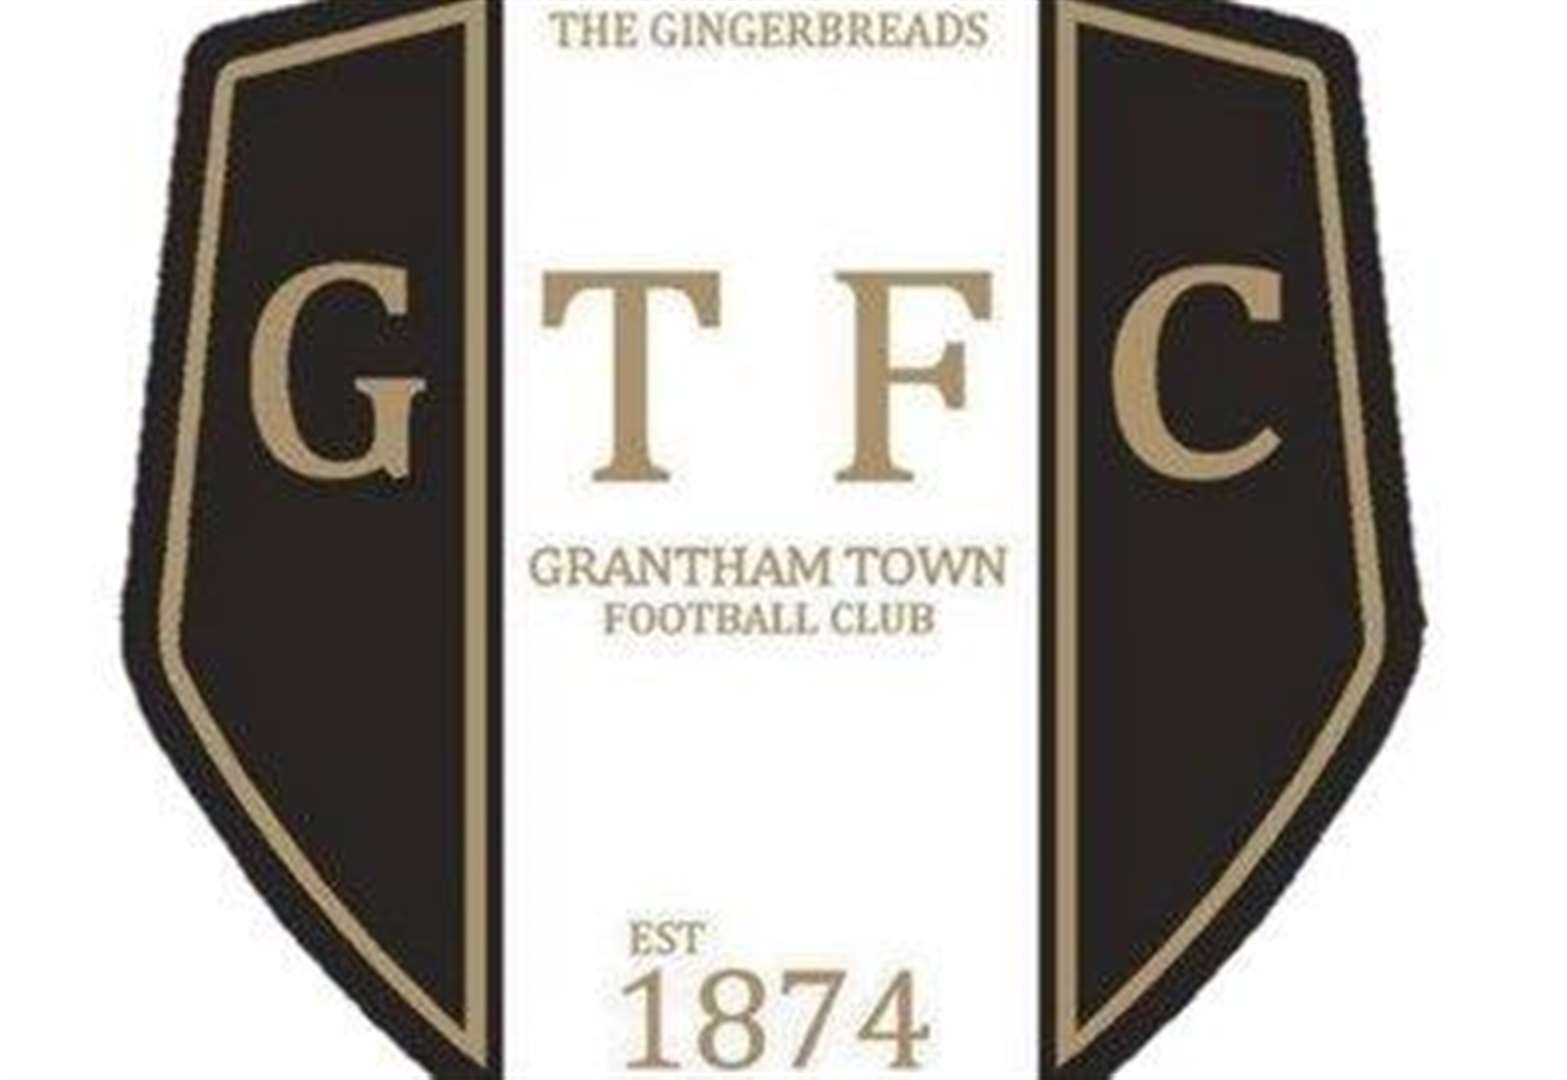 Gingerbreads lotto winners